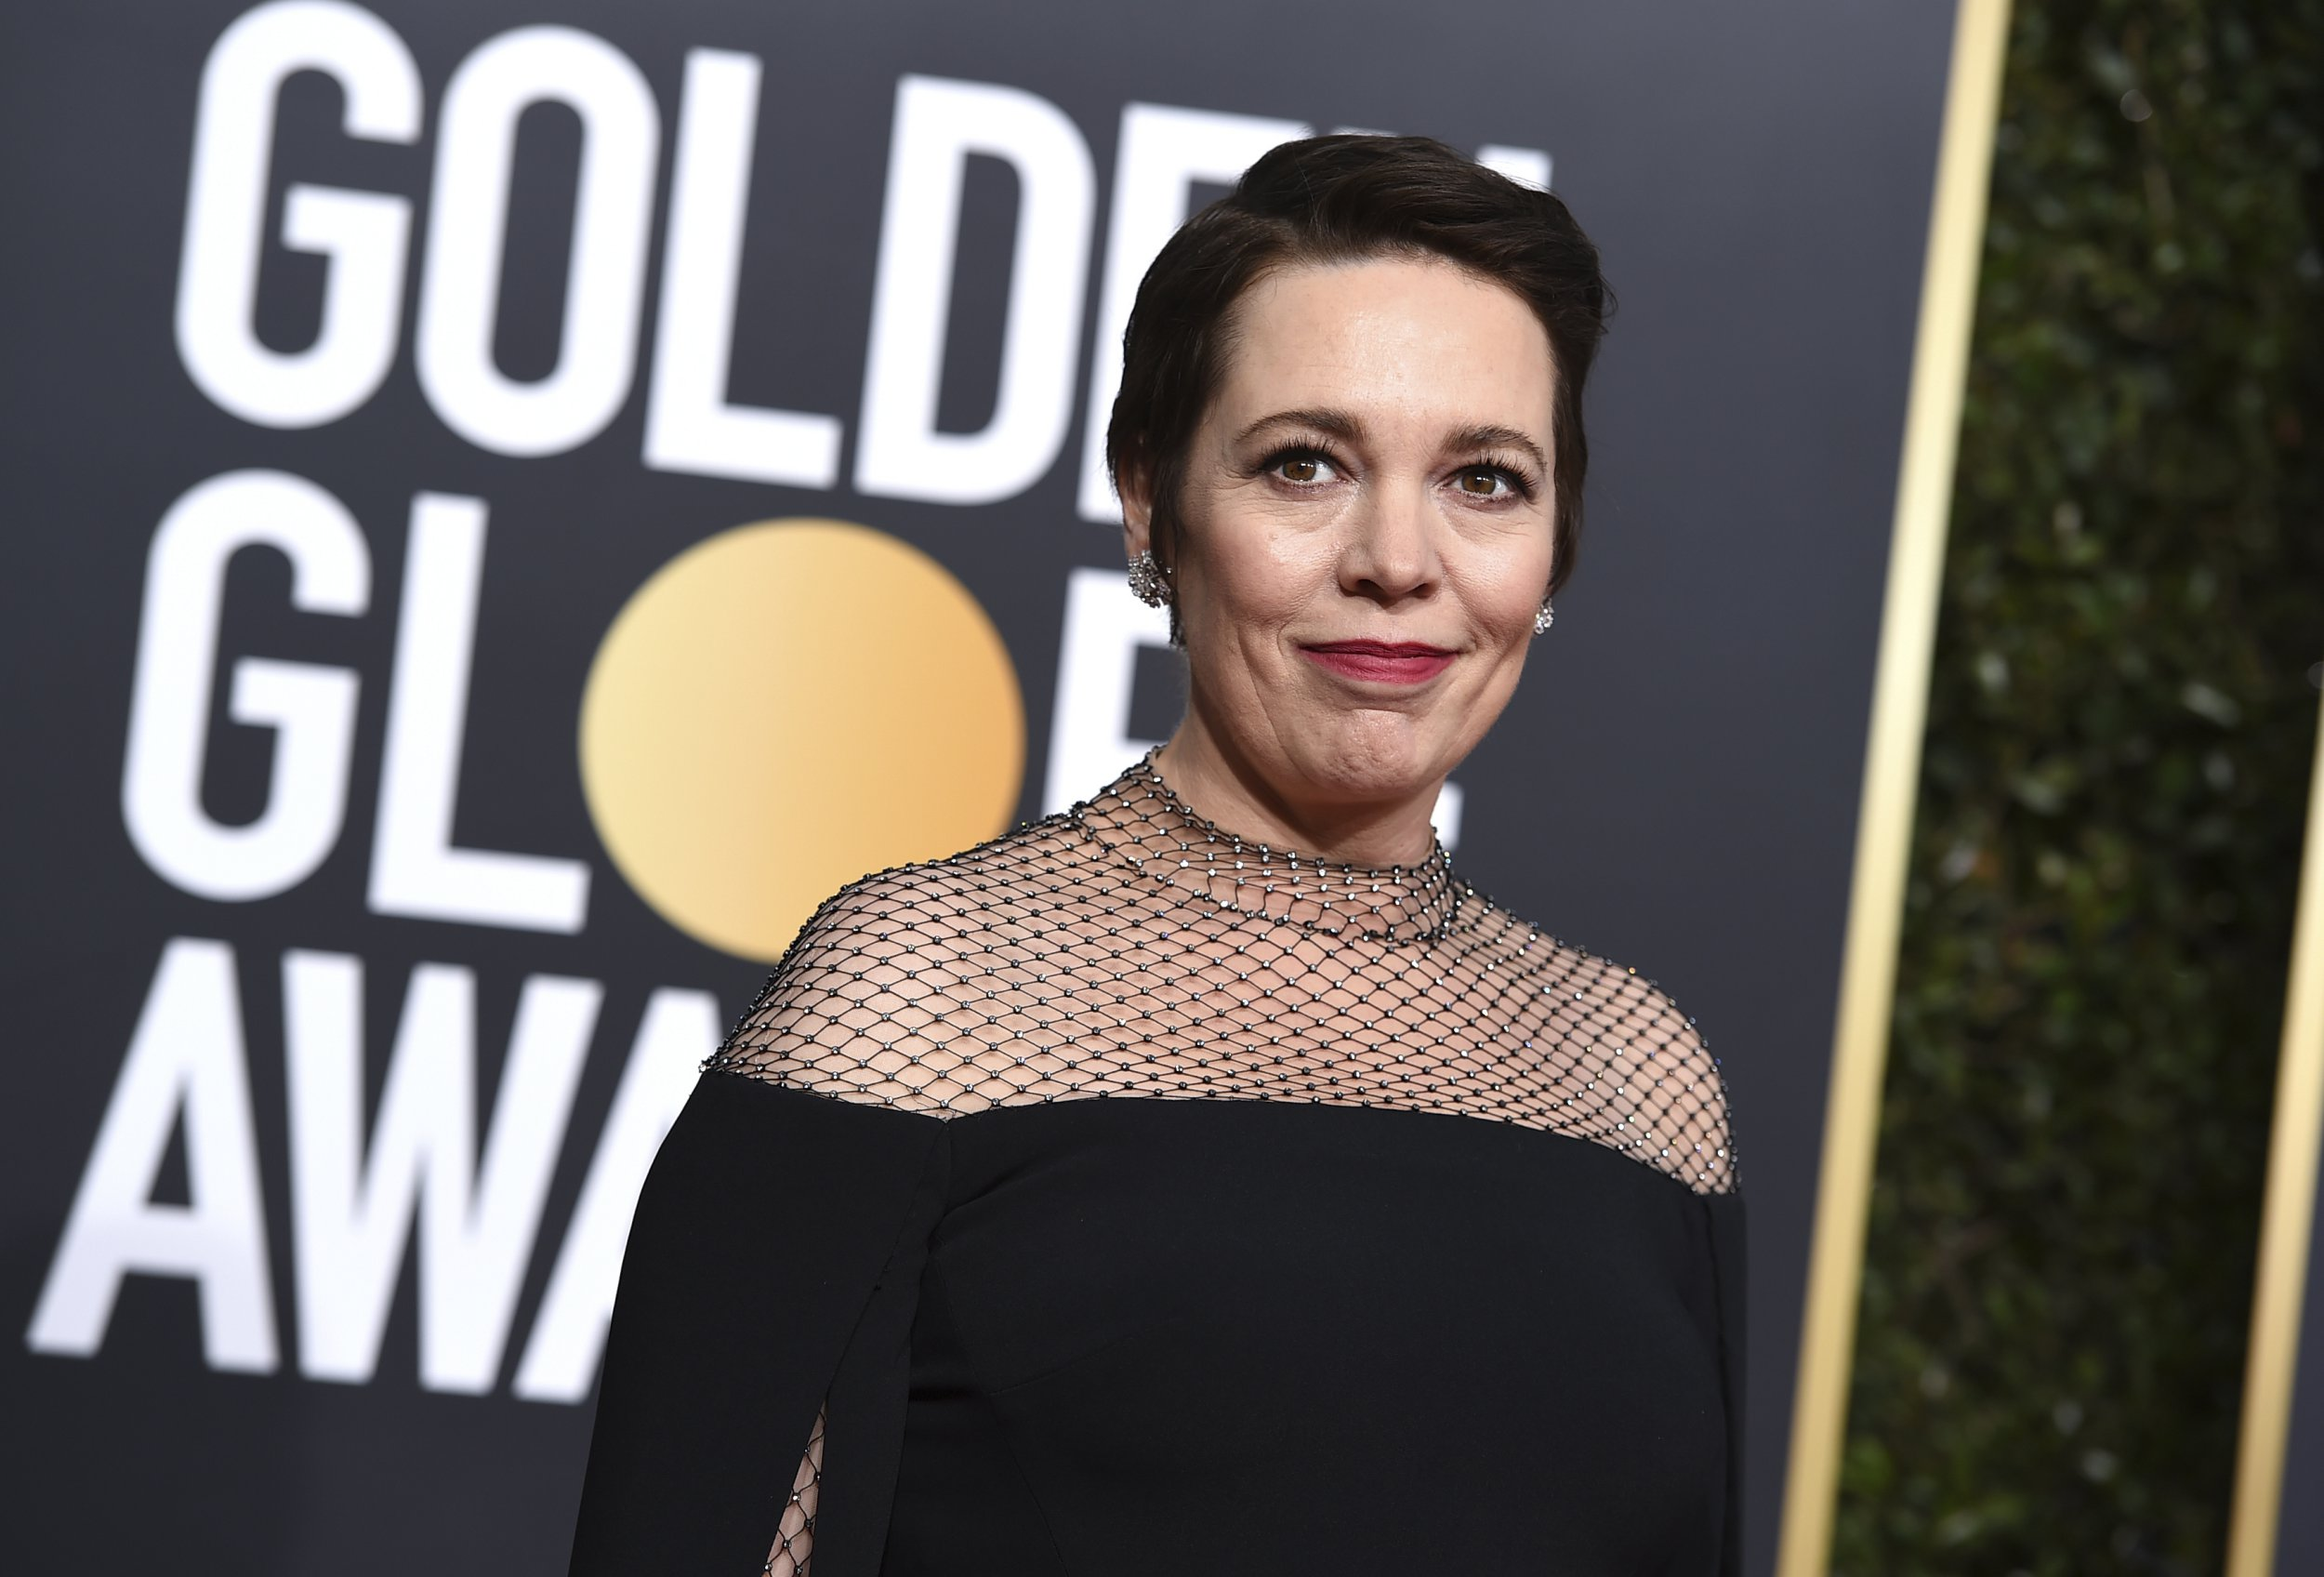 Where can you watch the Golden Globes highlights online?